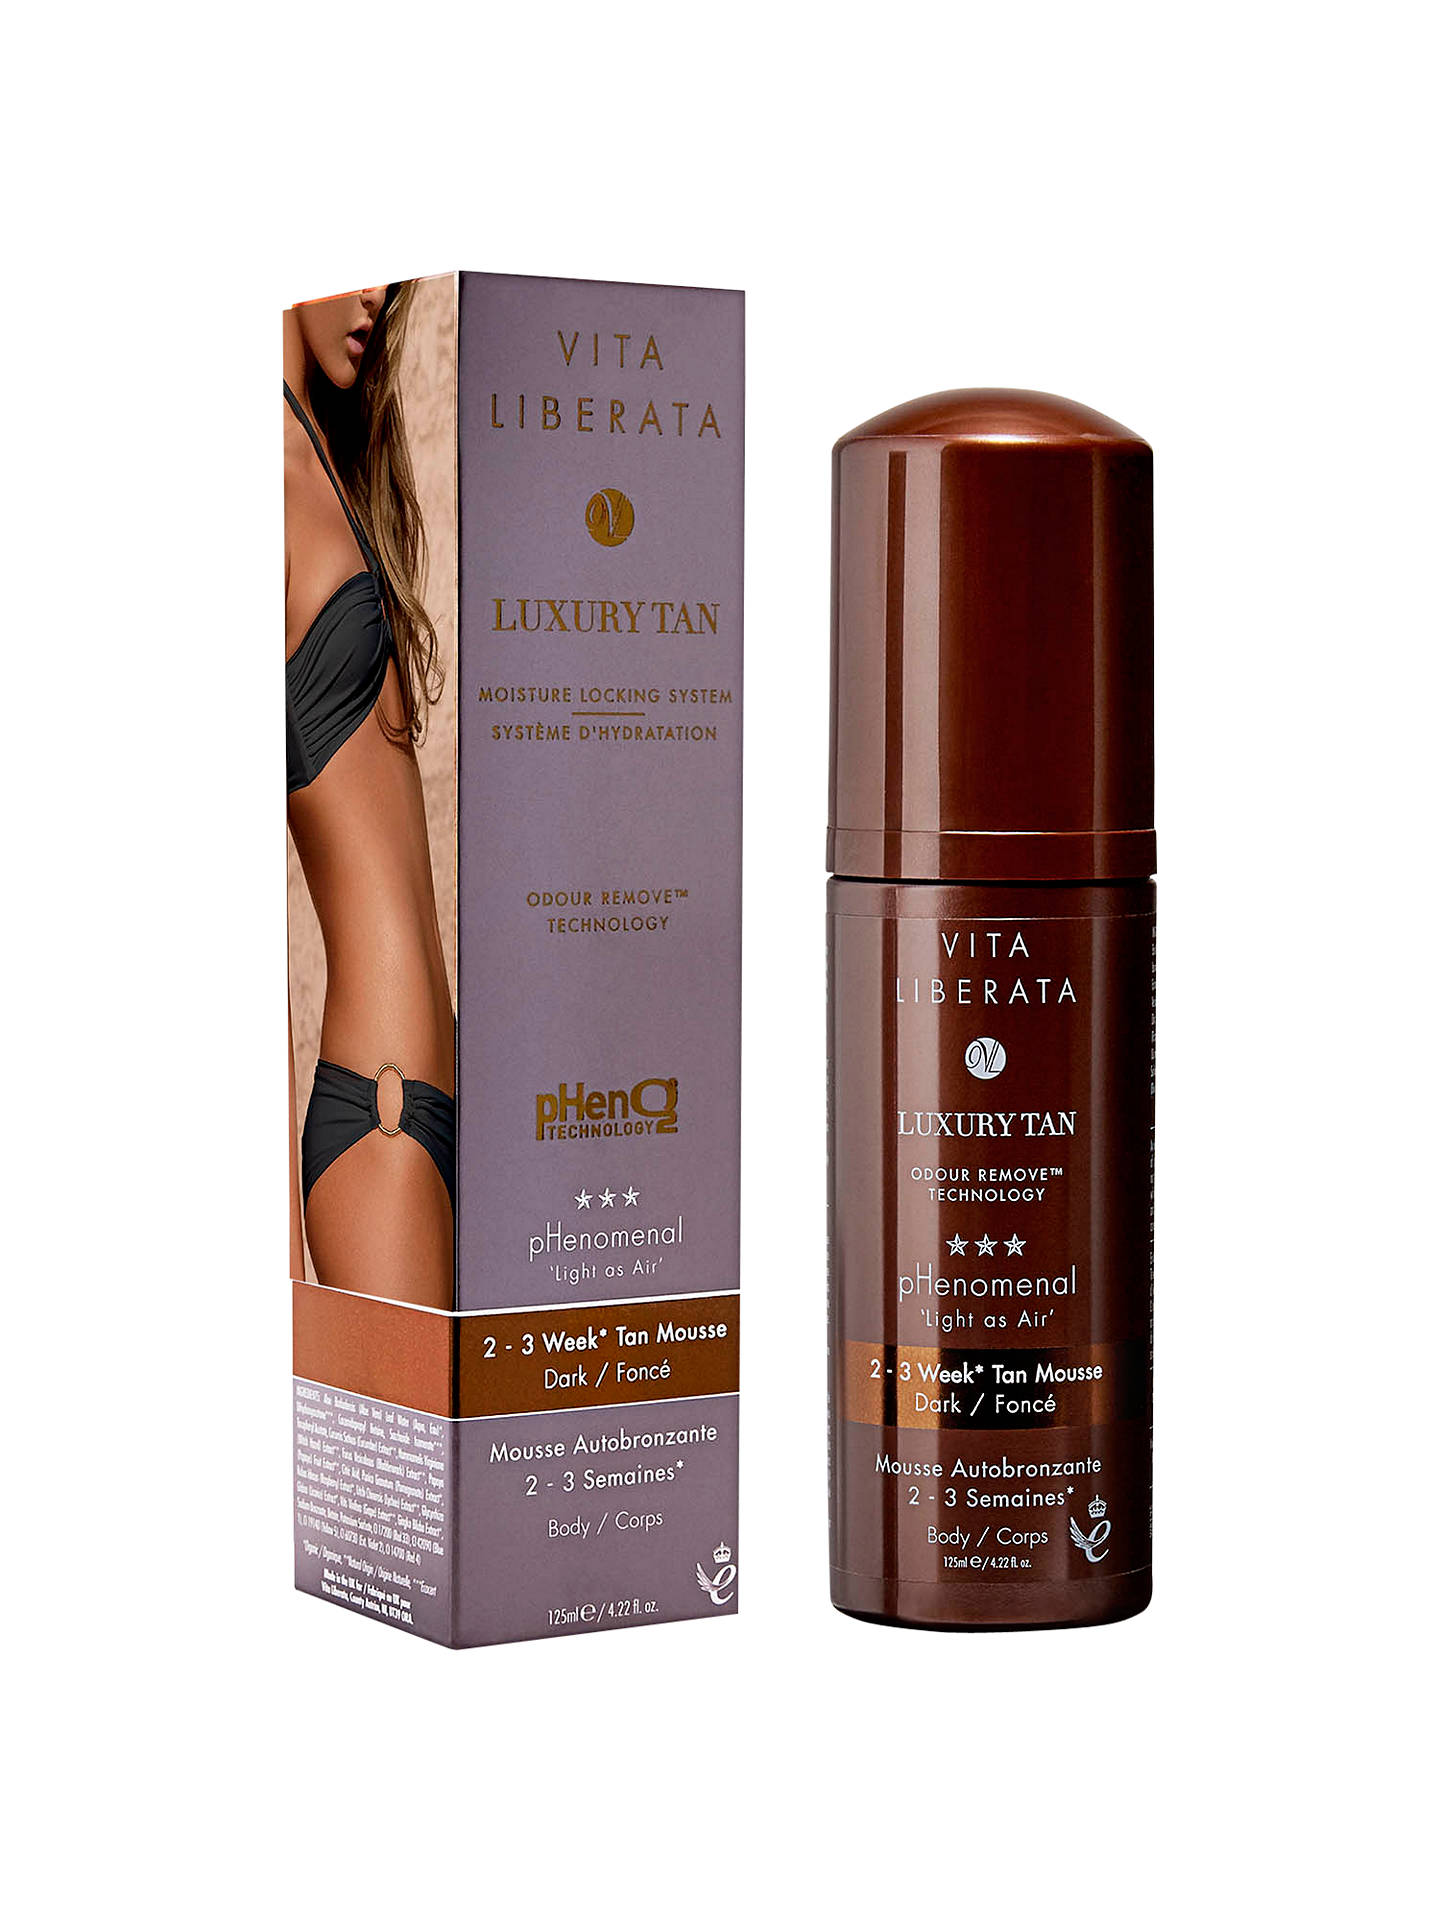 Buy Vita Liberata pHenomenal 2-3 Week Tan Mousse, Dark Online at johnlewis.com